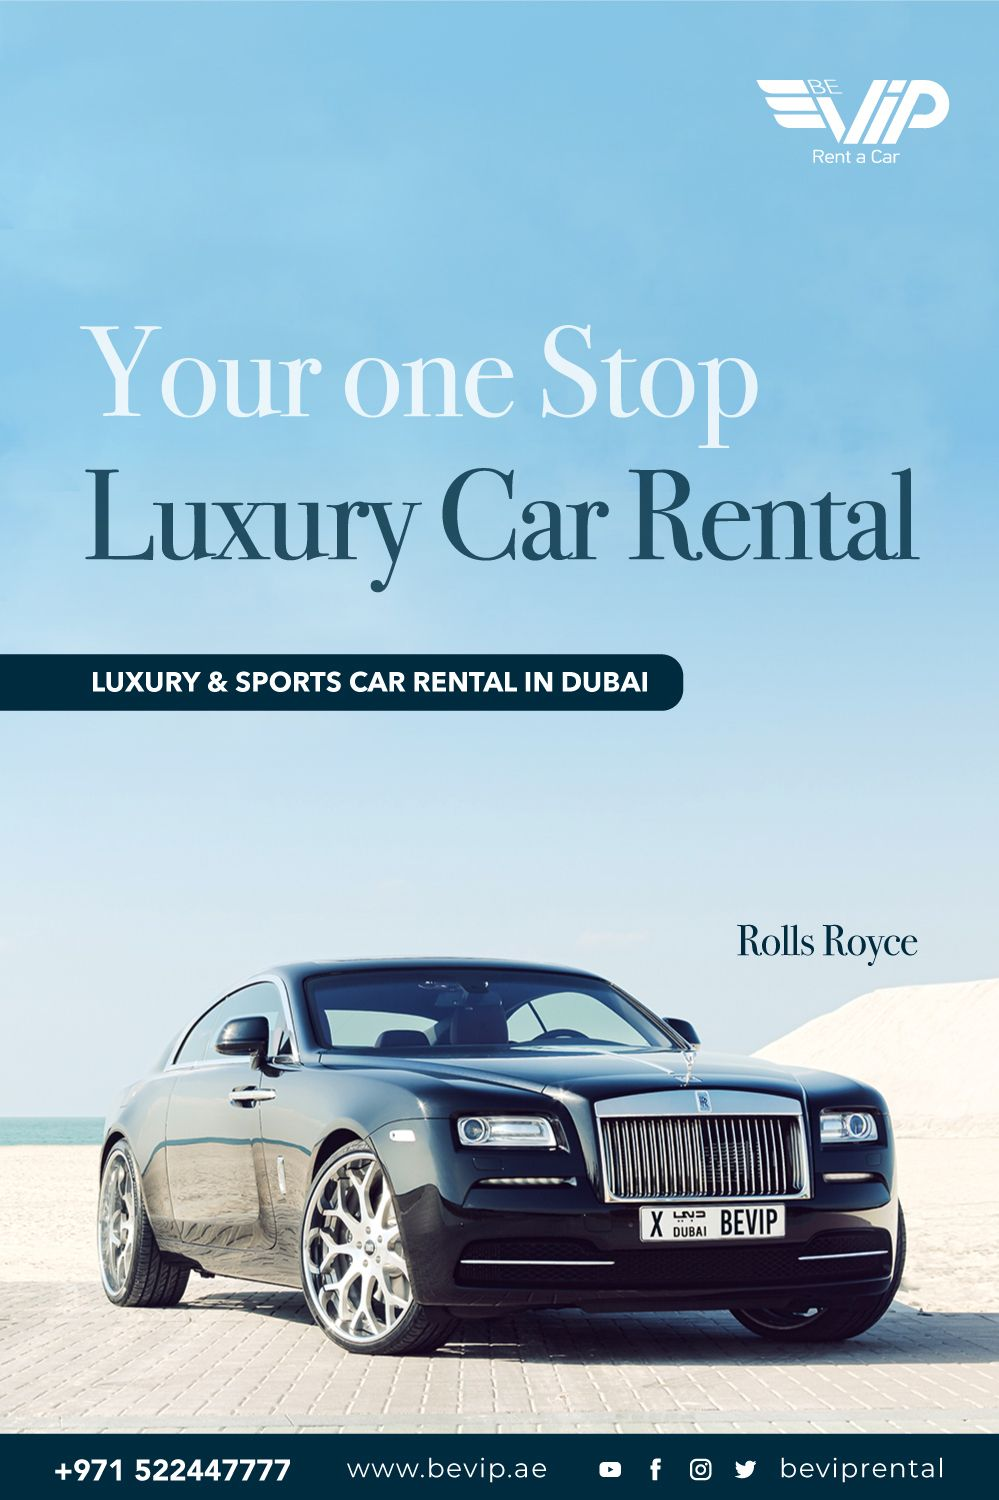 The New Rolls Royce Wraith From Be Vip Luxury Car Rental In Dubai Is All In One Product Which Provides Beauty Power A Rolls Royce Rolls Royce Wraith Car Rental